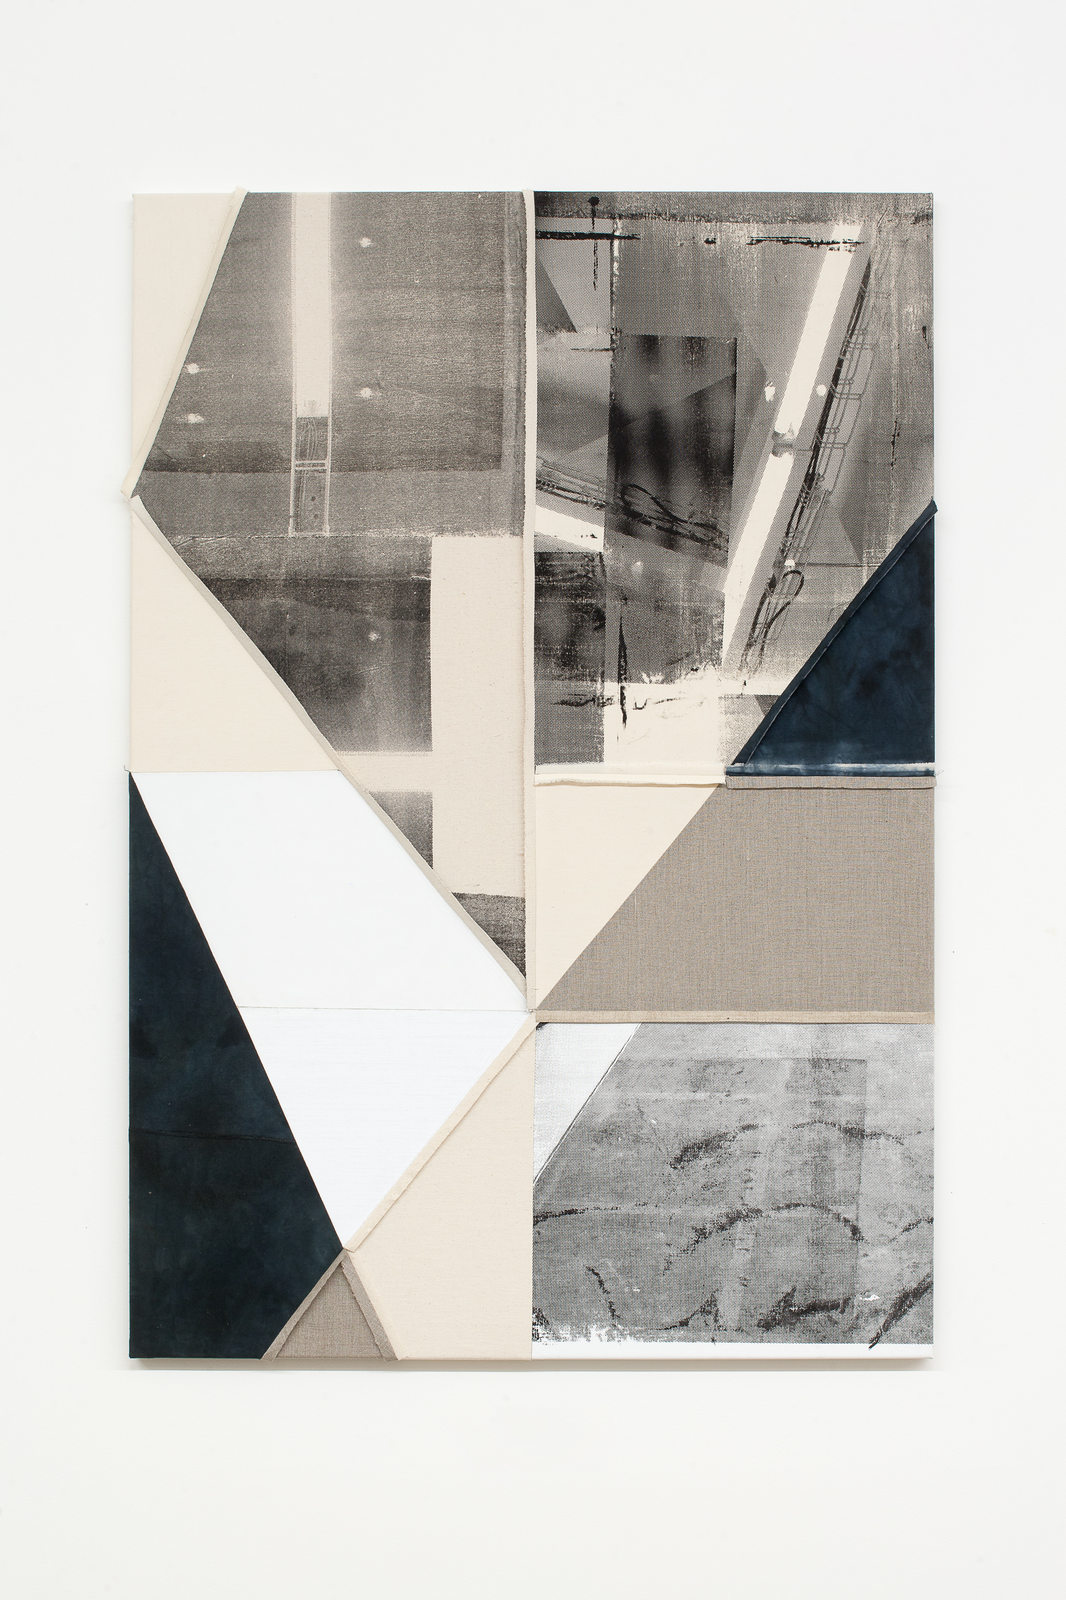 The painters have finished_SVIT 11-2016-4494_Alexander Wolff,Untitled, 2016, silkscreen on cotton, canvas,linnen, 150 x 103 cm